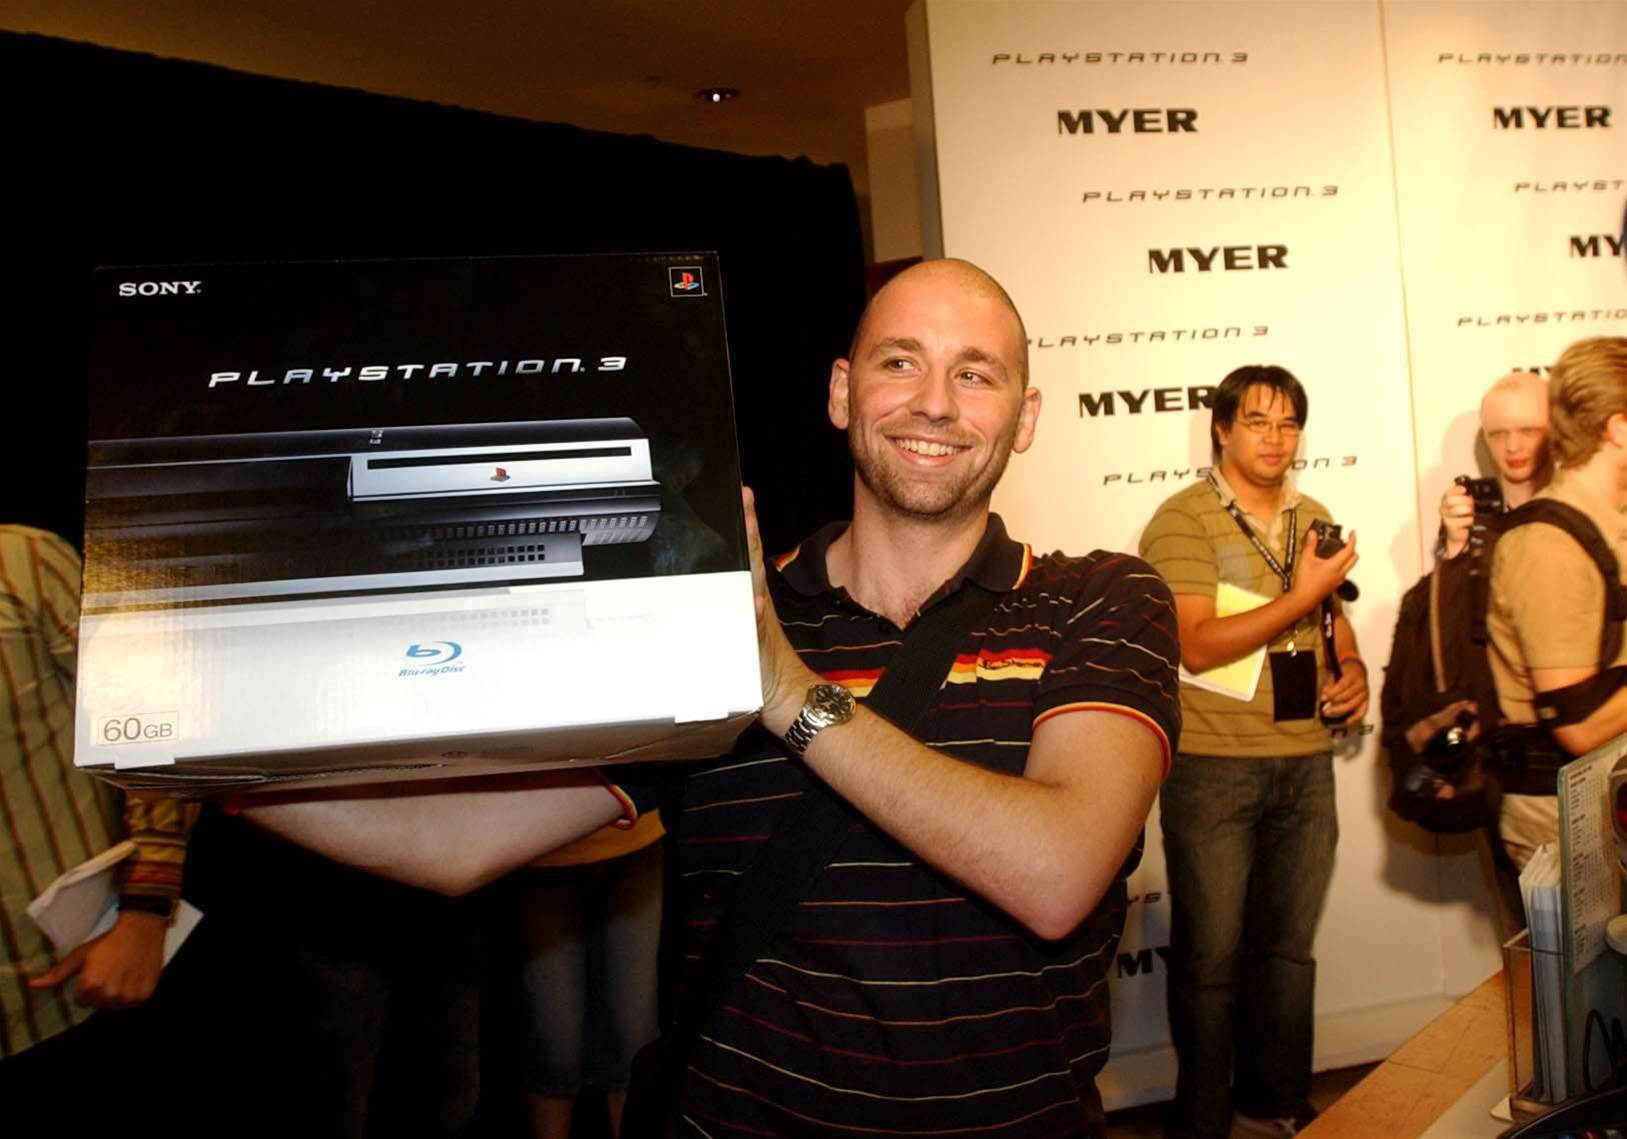 Local retailers launch Playstation 3